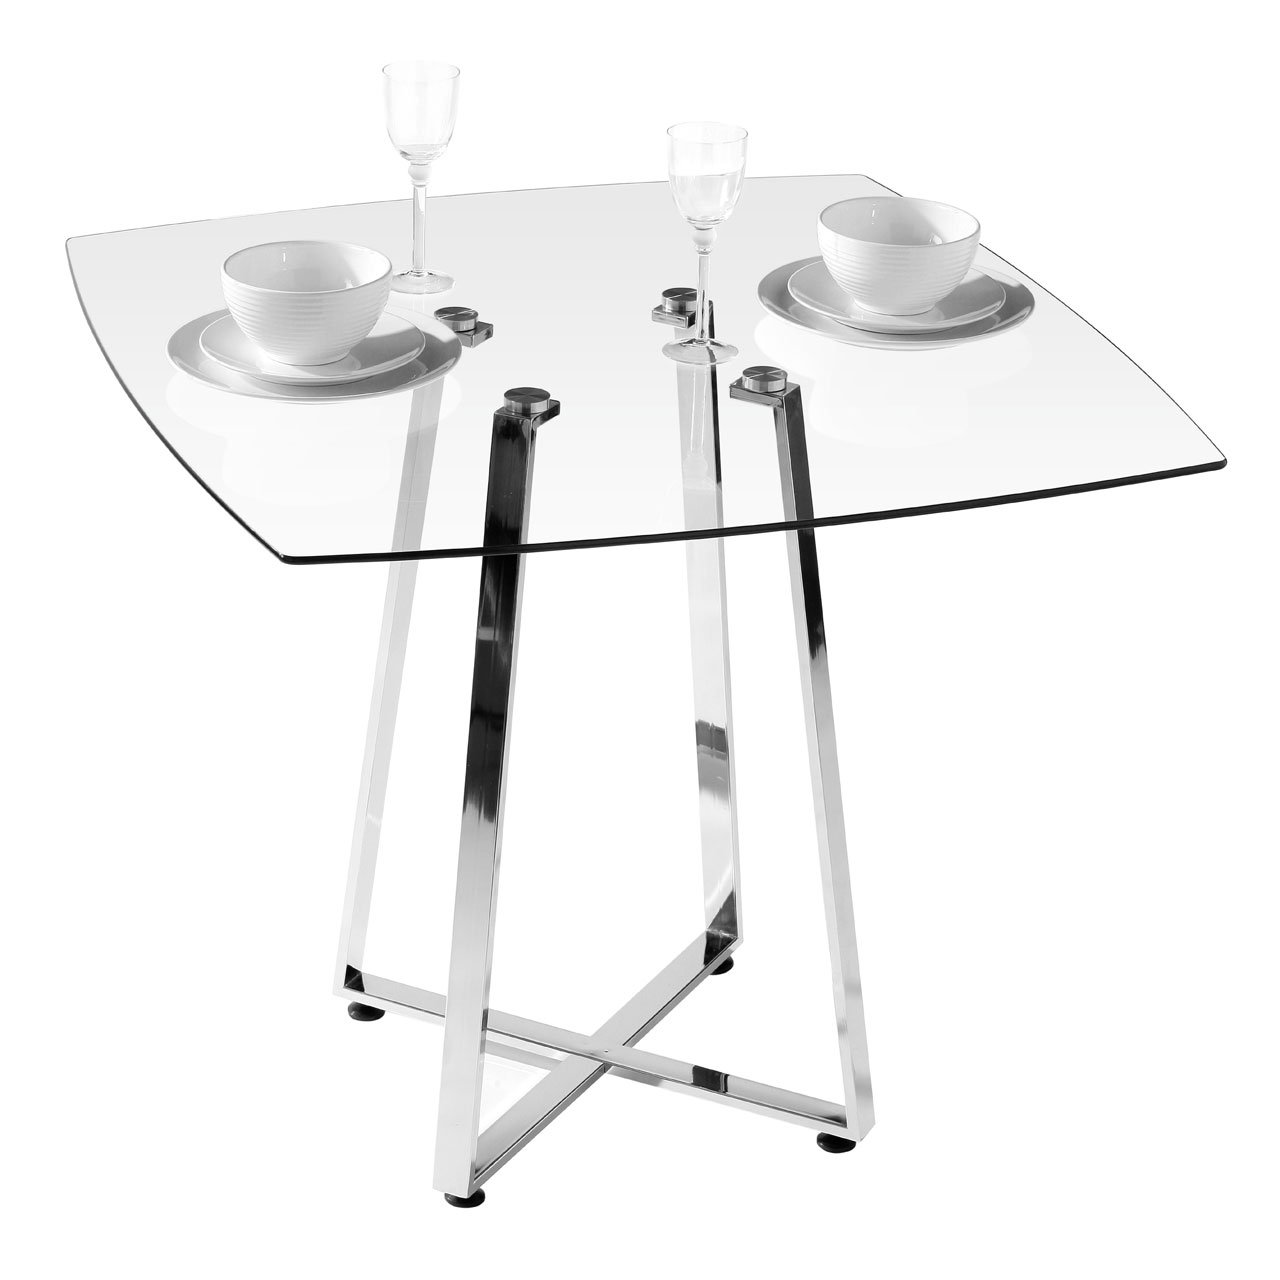 Premier Housewares Square Glass Dining Table, 76 x 90 x 90 cm       Customer reviews and more information